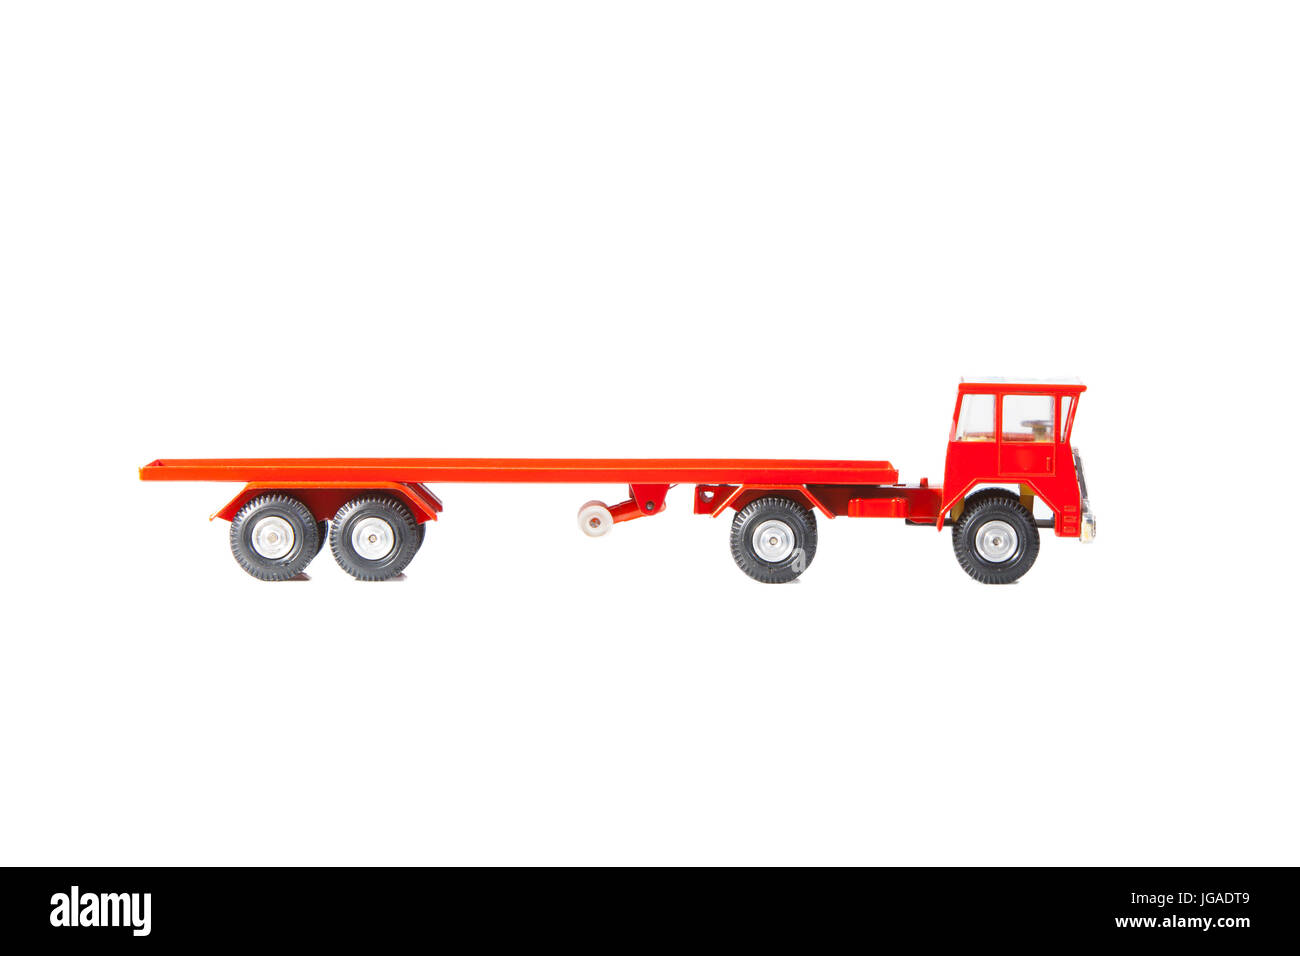 Red empty Toy Truck with Trailer - Stock Image